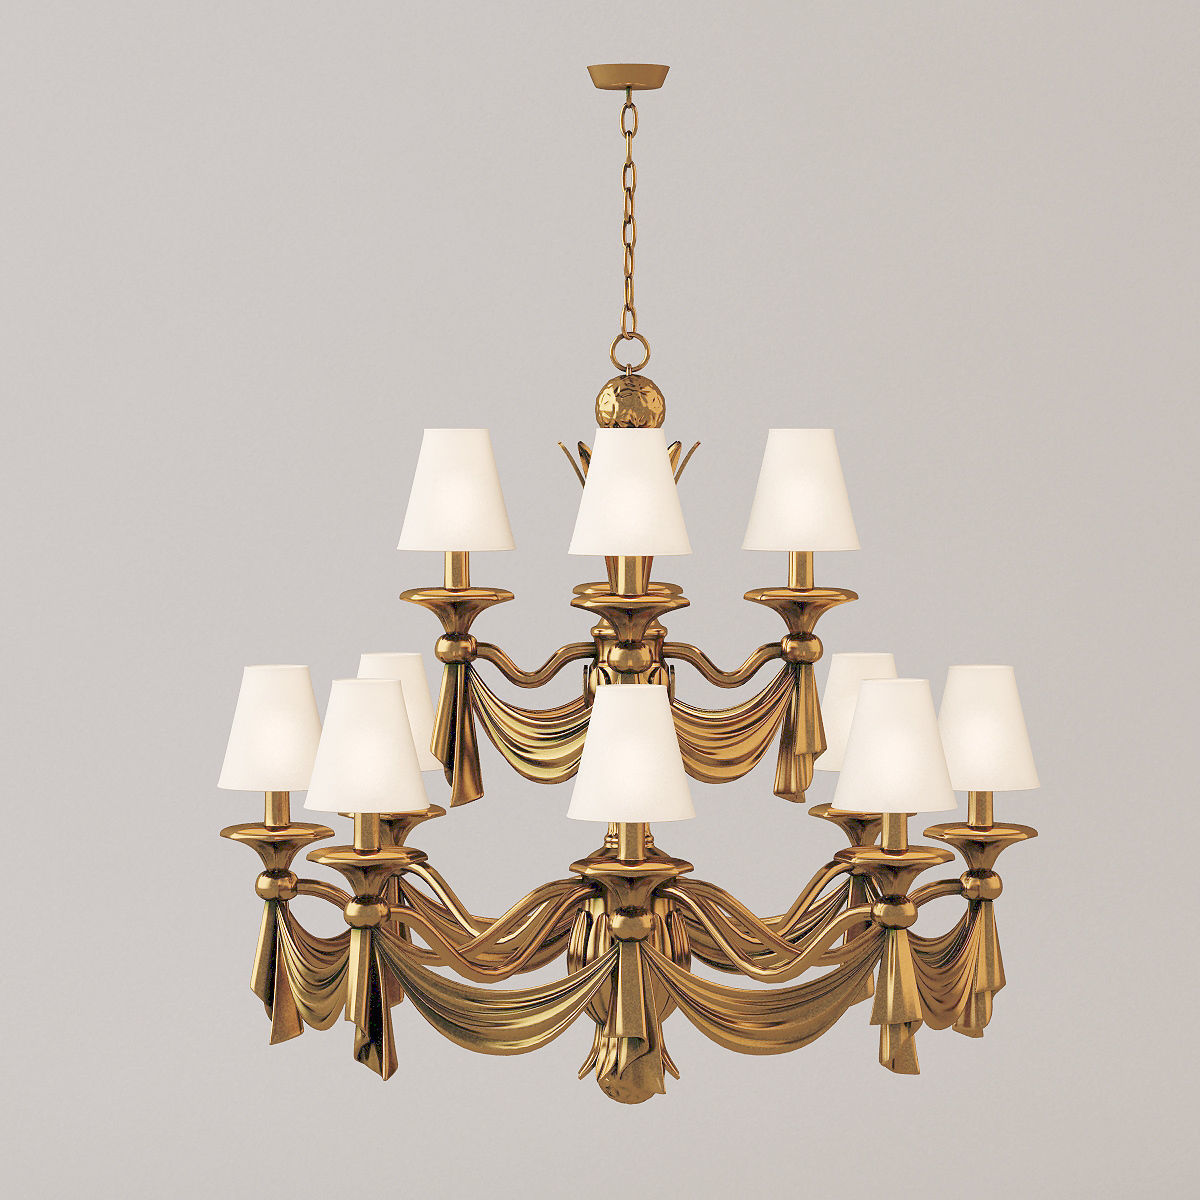 3d classic ceiling lamp cgtrader classic ceiling lamp 3d model max obj fbx 1 aloadofball Image collections